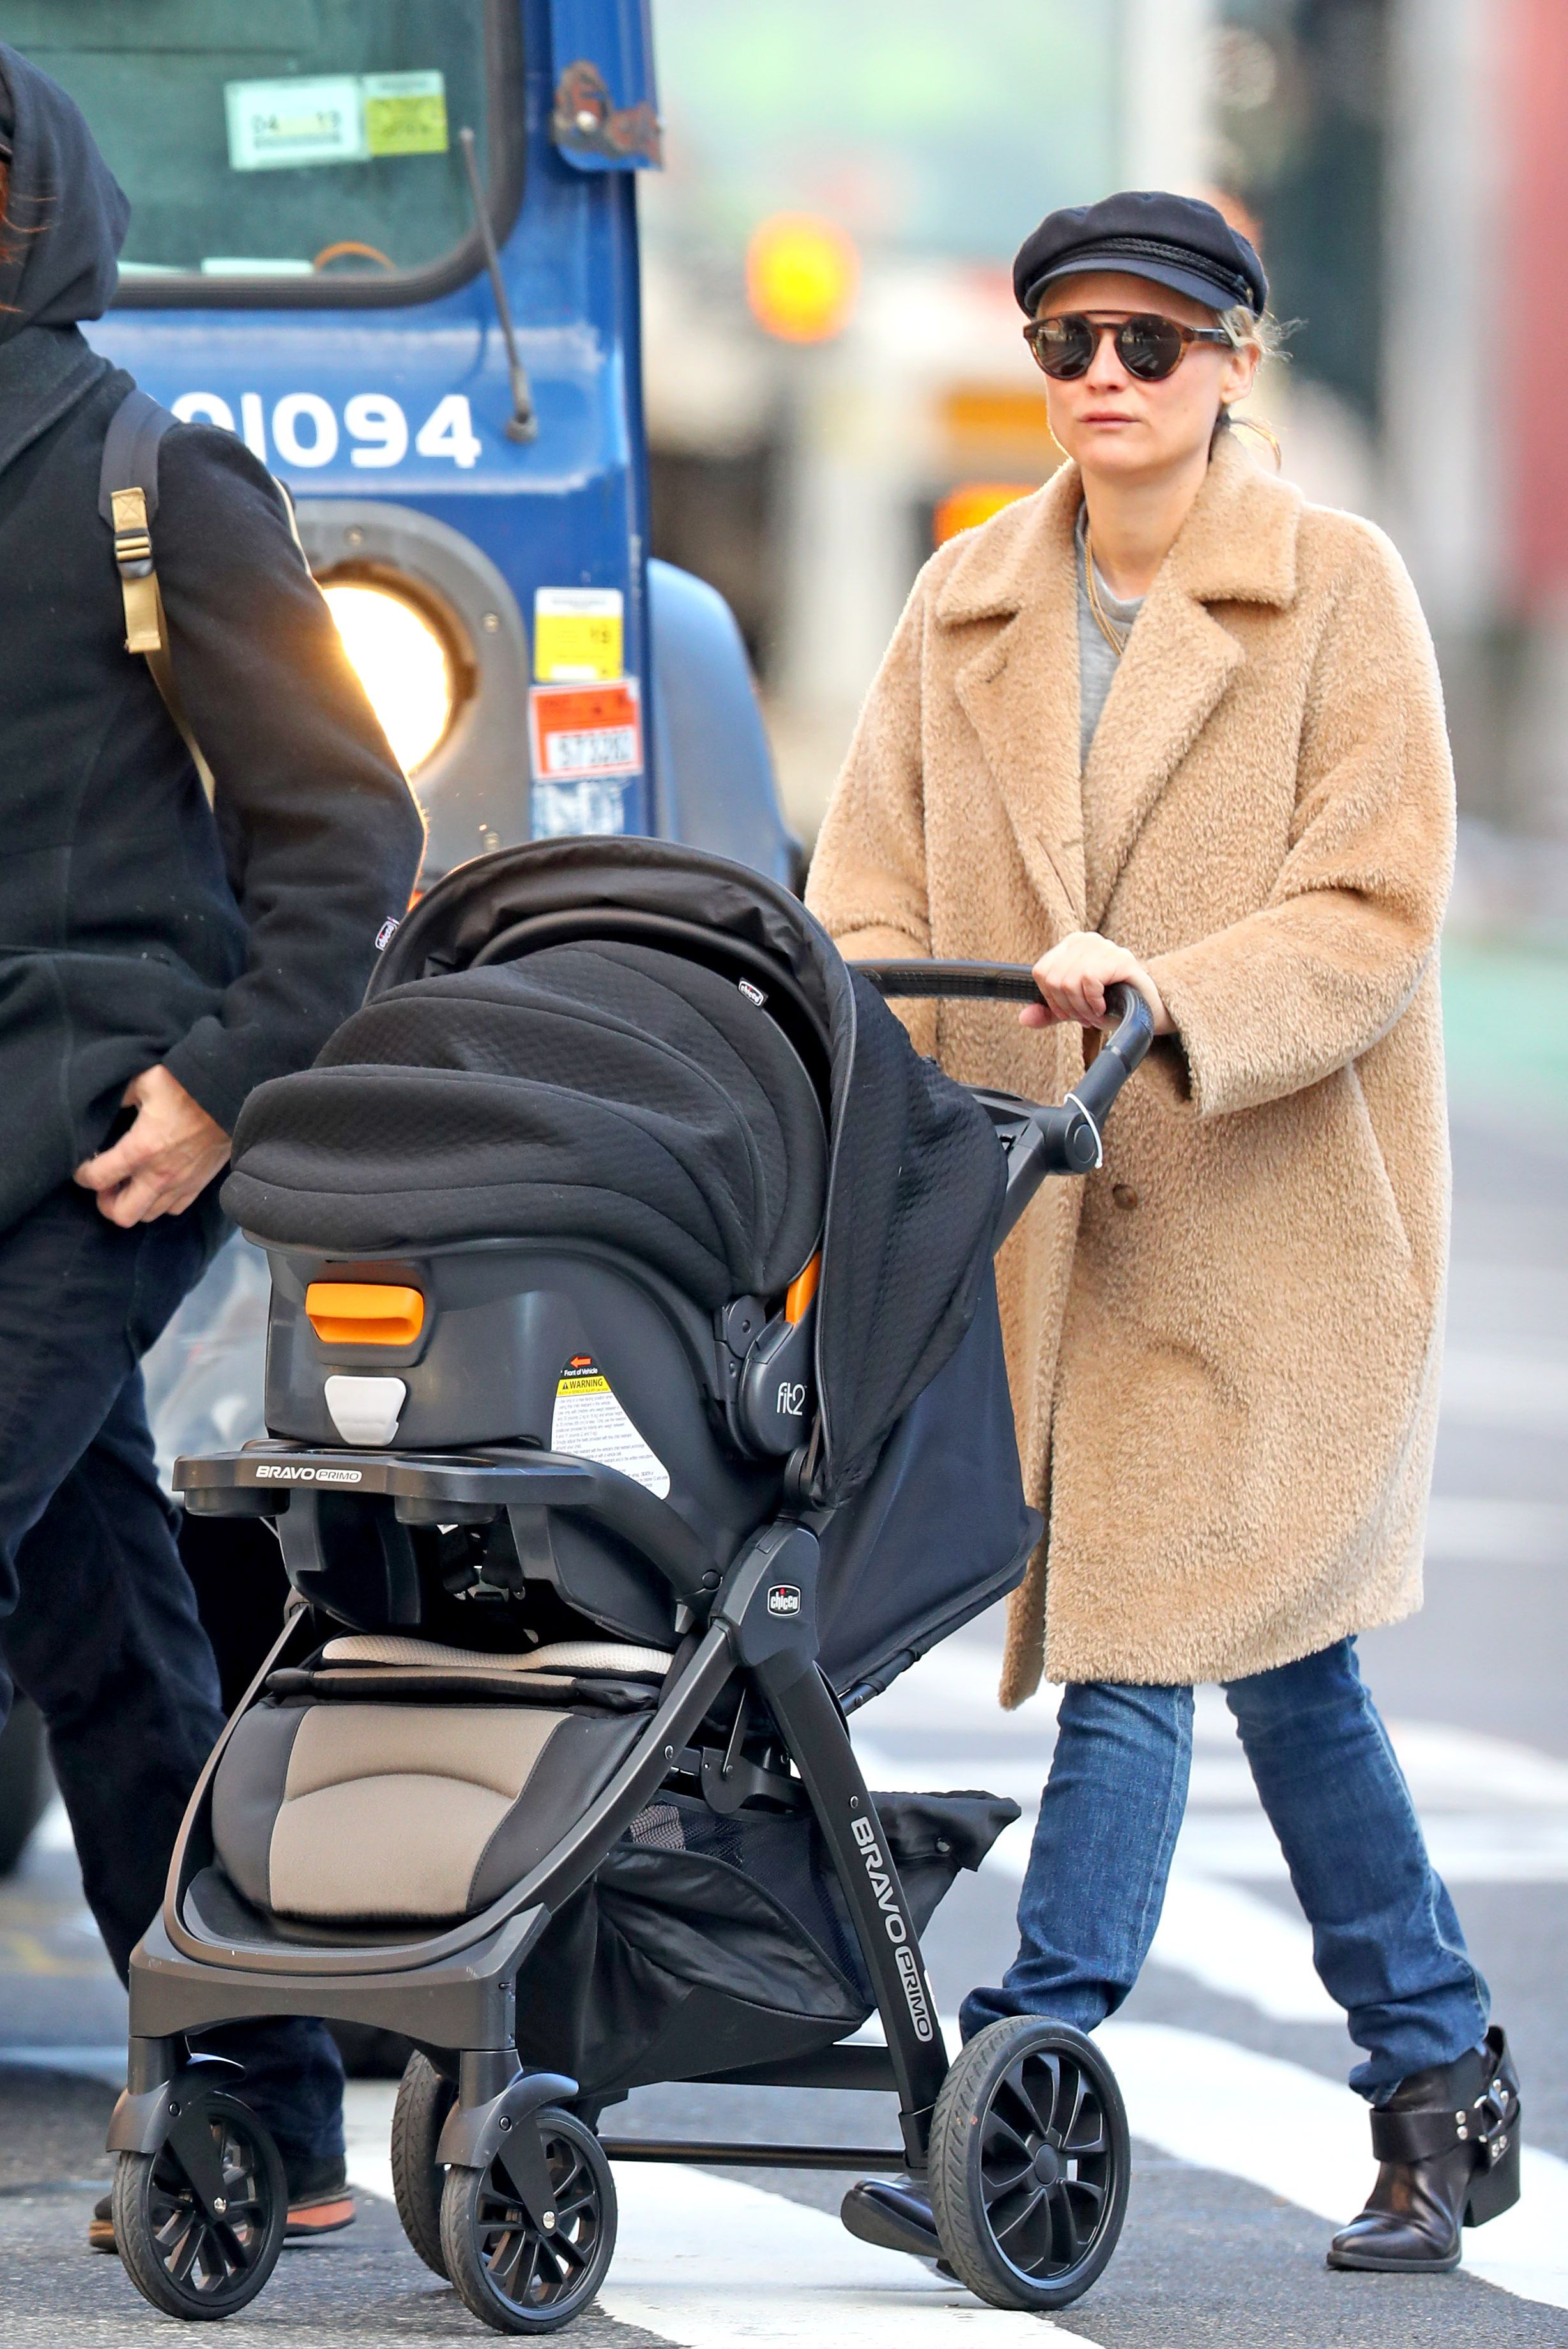 Diane Kruger and Norman Reedus Are Spotted Out Walking With Their Baby For The First Time in New York City